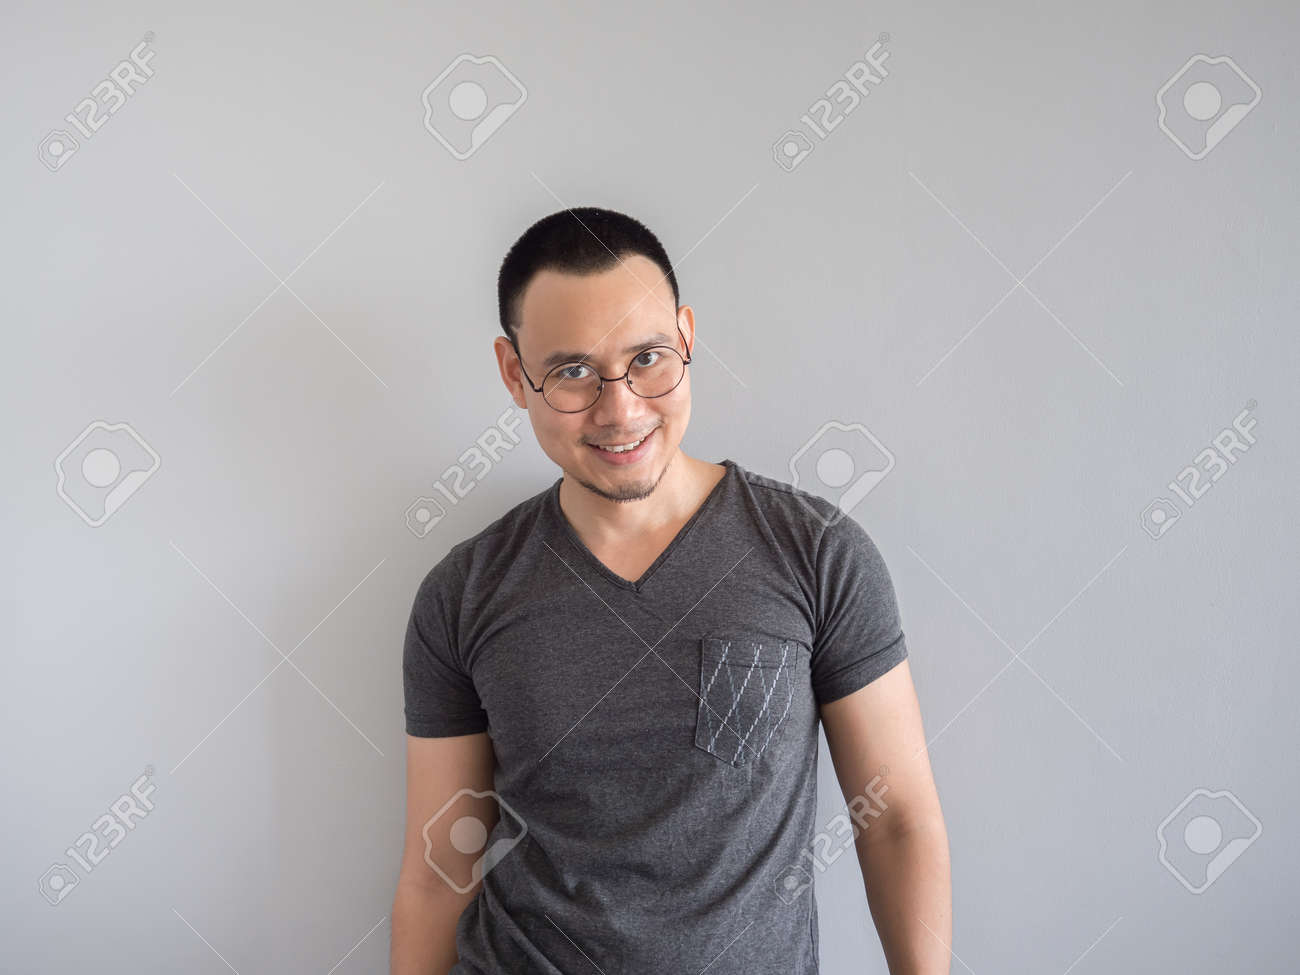 Happy Asian Freelance Man With Skinhead And Relaxing Mile Haircut